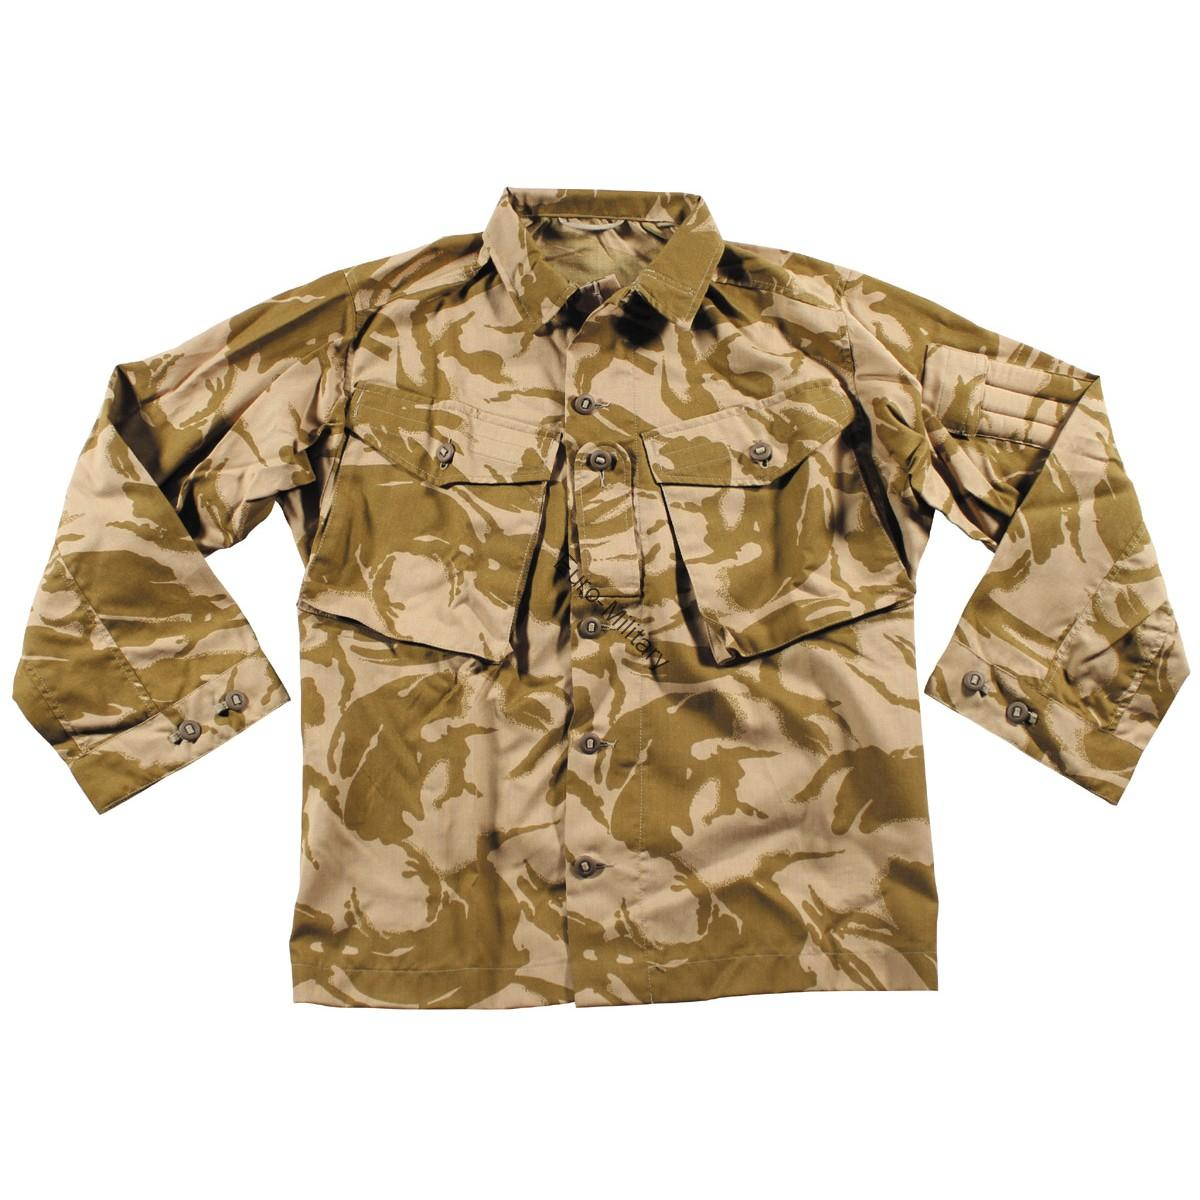 Original British Army Battle Jacket DPM Desert Camo Fire Resistant